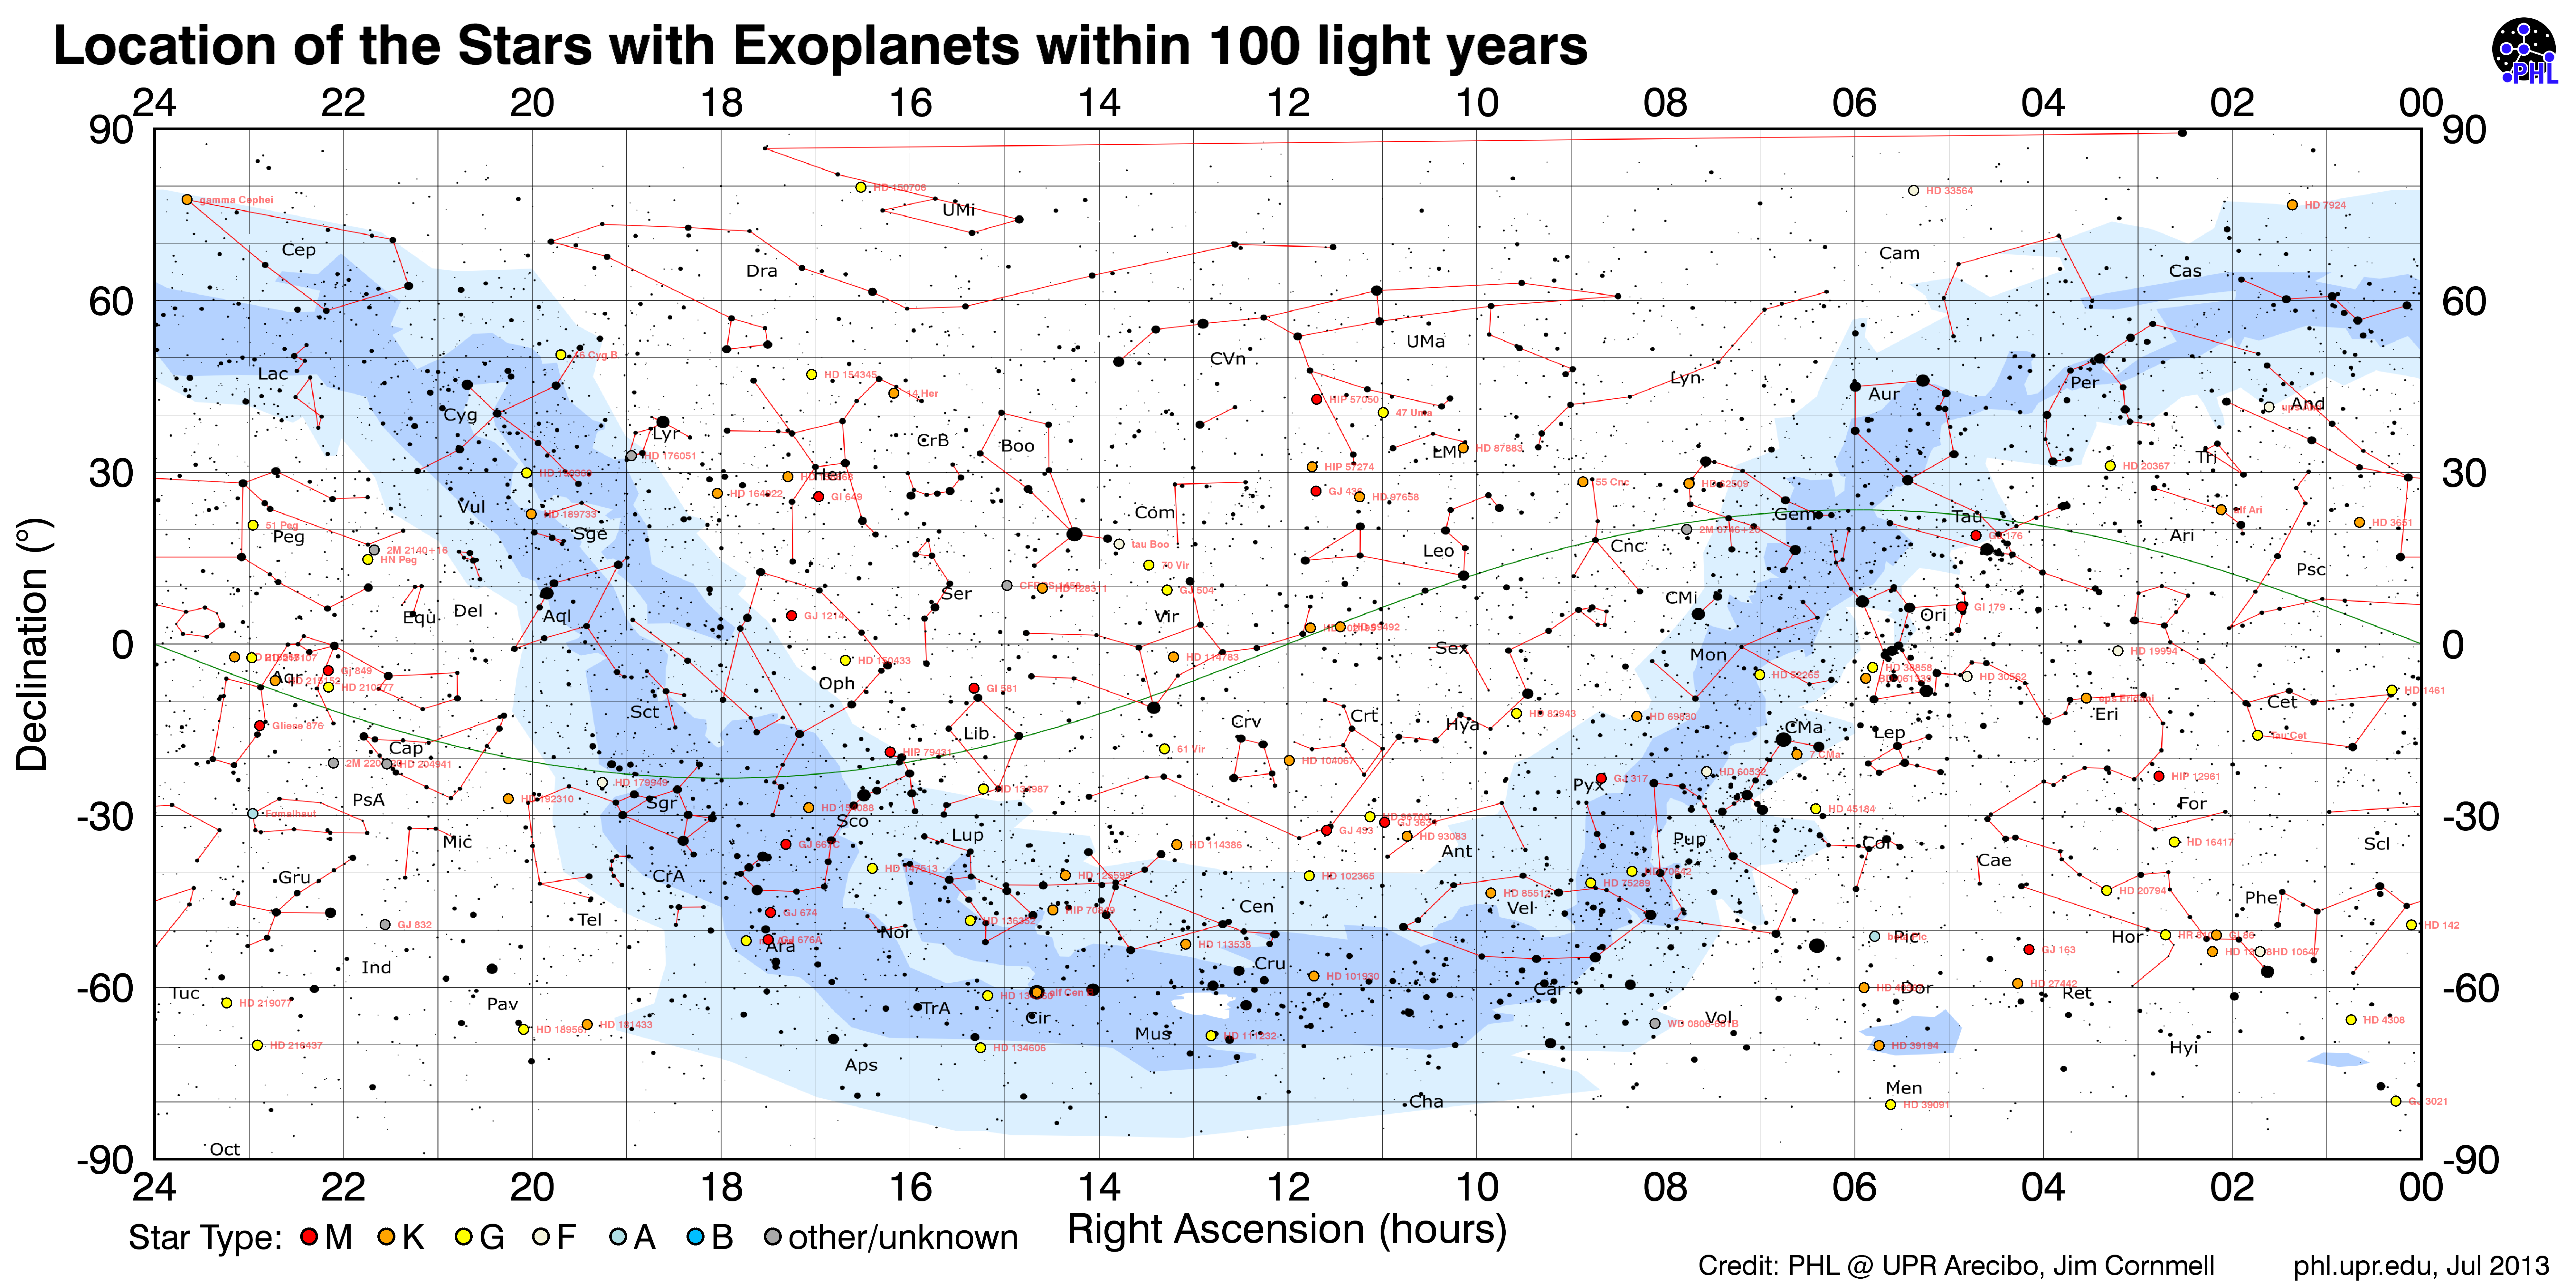 http://www.hpcf.upr.edu/~abel/phl/exomaps/nearby_stars_with_exoplanets.png